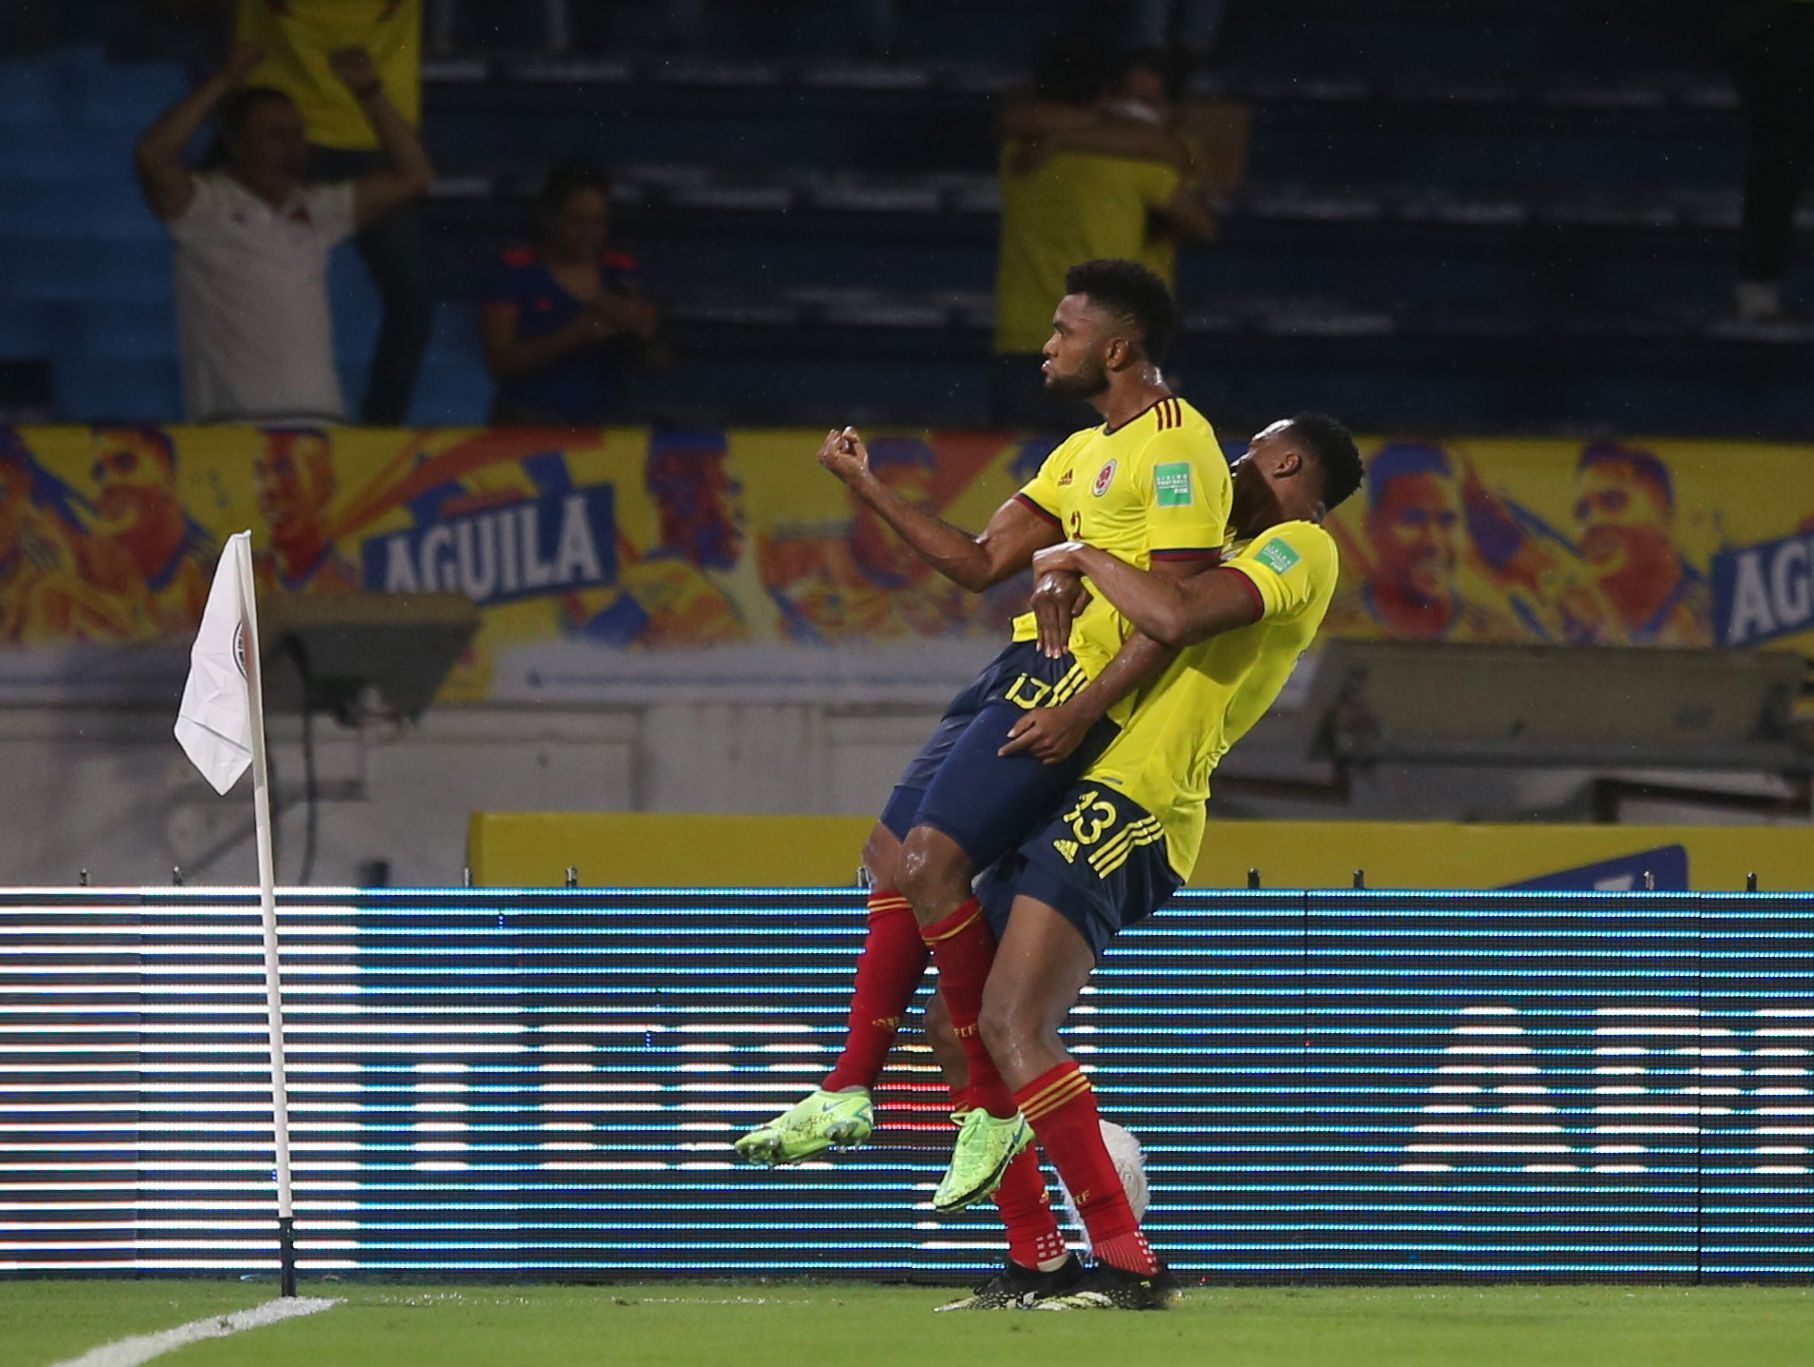 Soccer Football - World Cup - South American Qualifiers - Colombia v Argentina - Estadio Metropolitano, Barranquilla, Colombia - June 8, 2021 Colombia's Miguel Borja celebrates scoring their second goal with teammate Yerry Mina REUTERS/Luisa Gonzalez